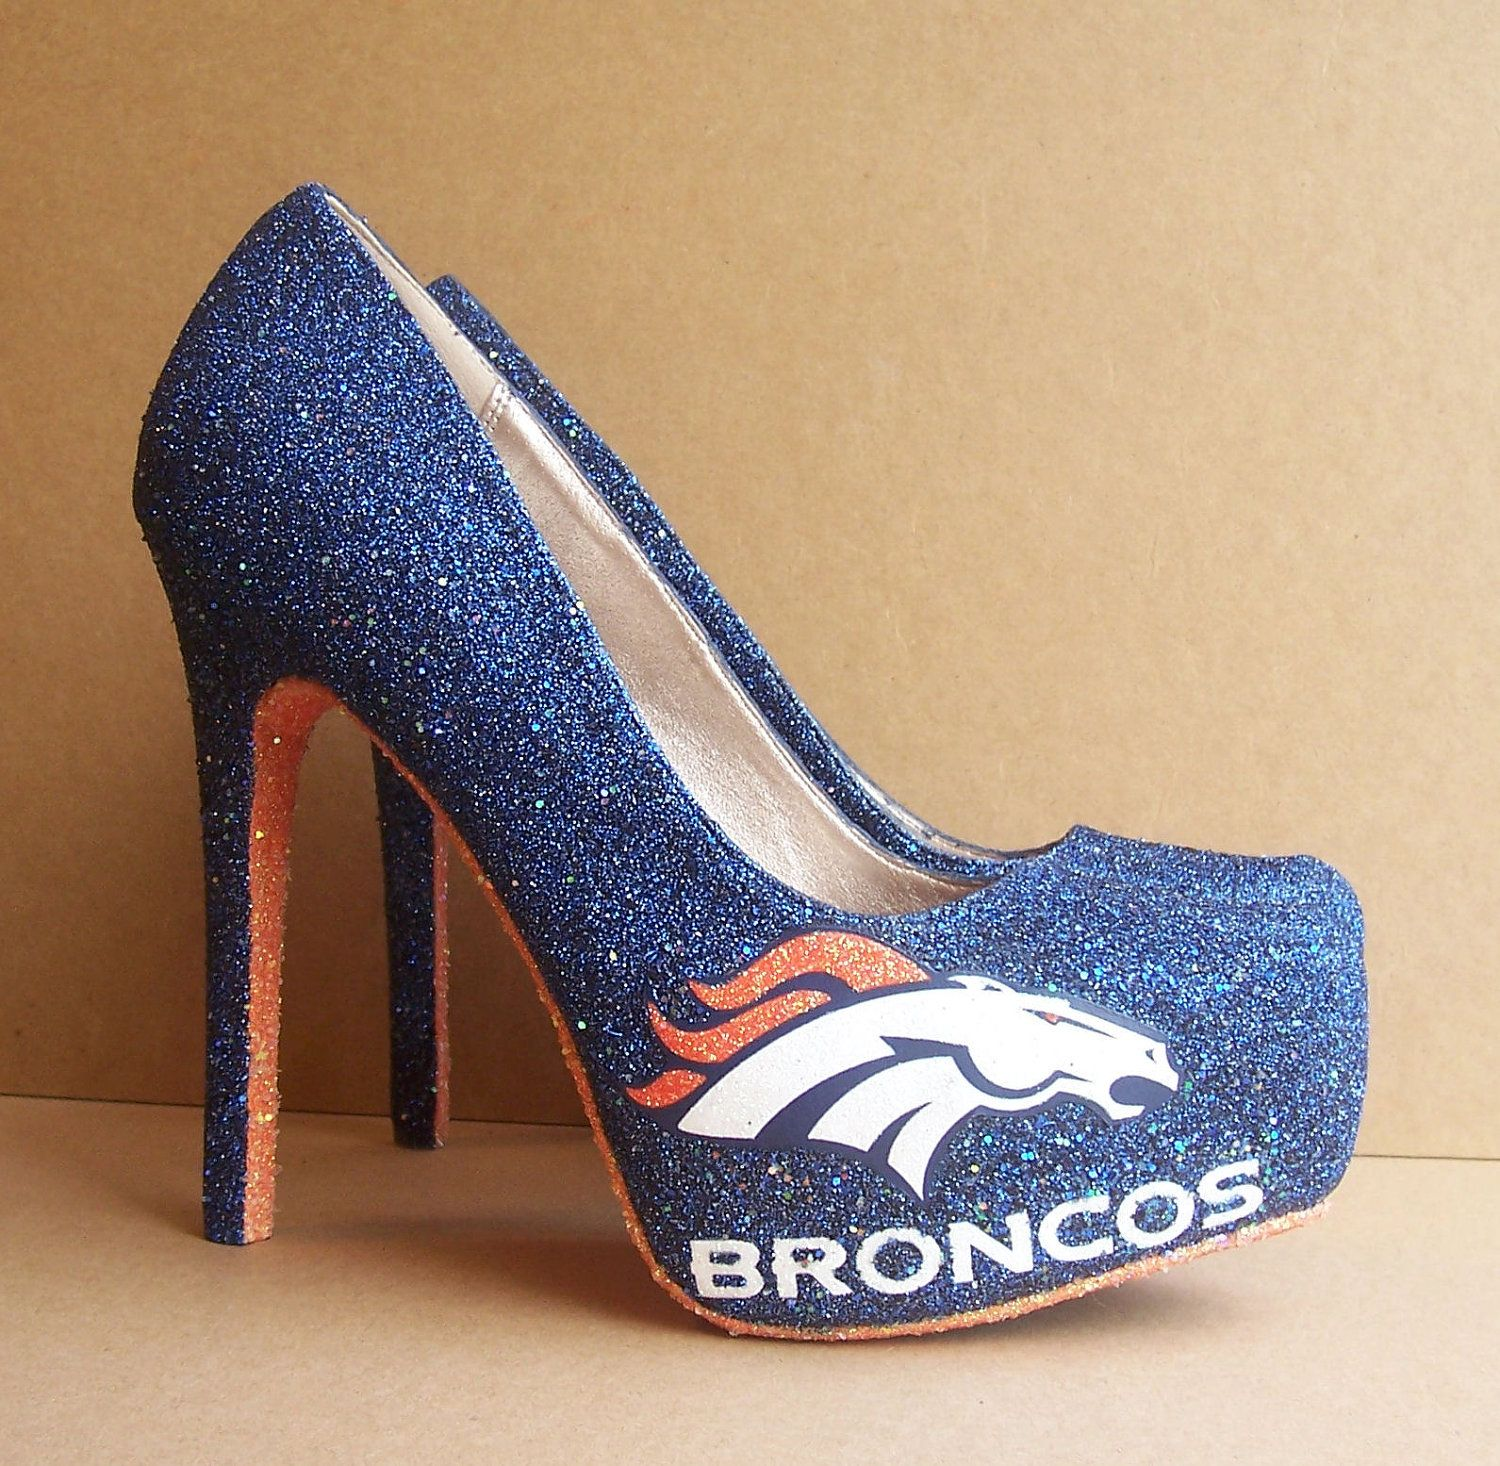 Denver broncos high heels by tattooedmary on etsy oh my lord